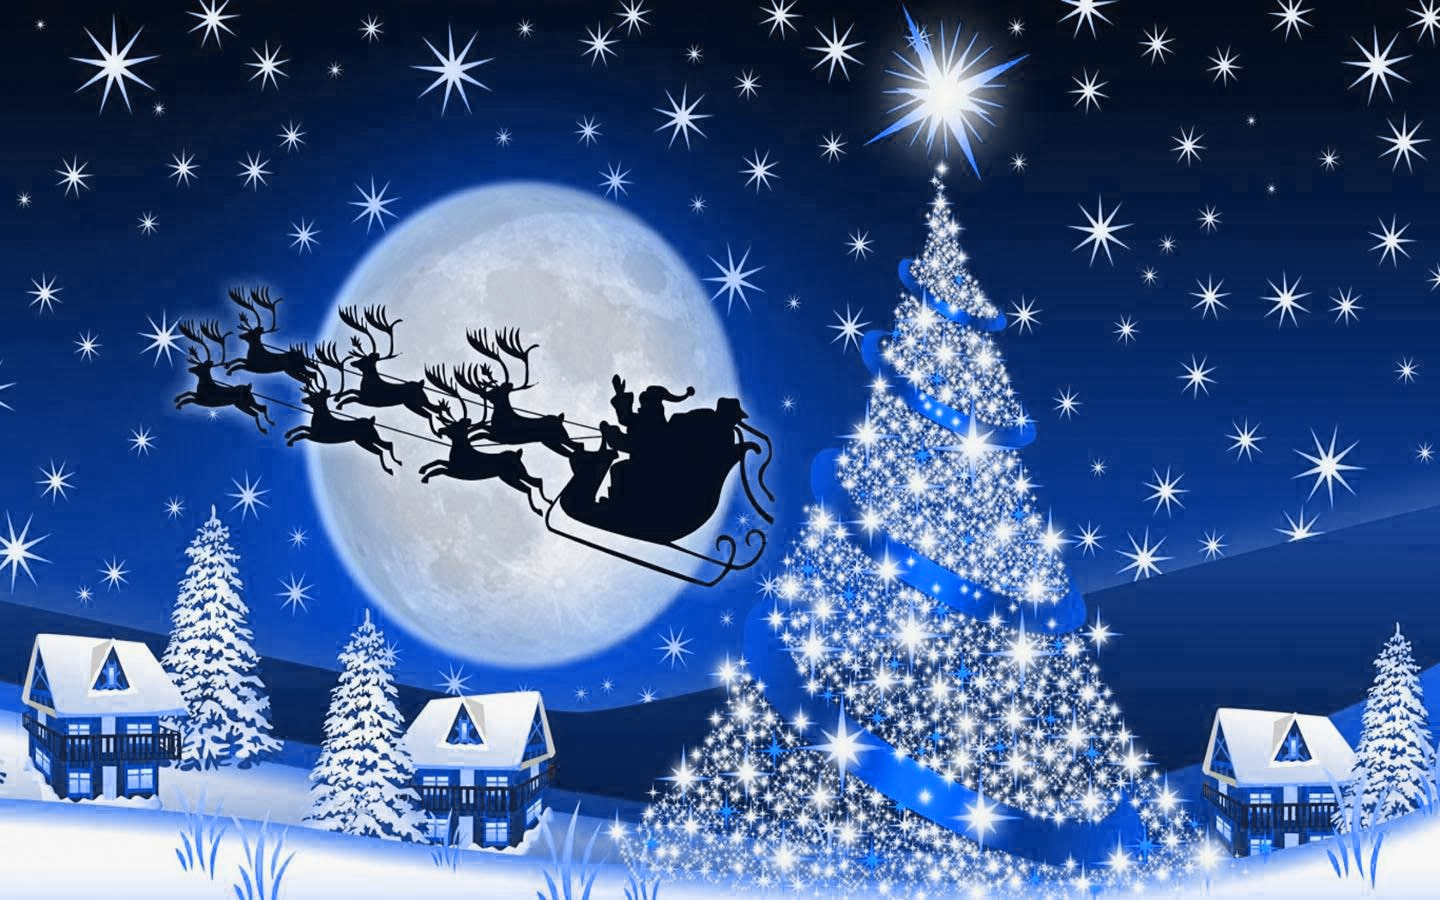 Christmas Night Wallpaper 1